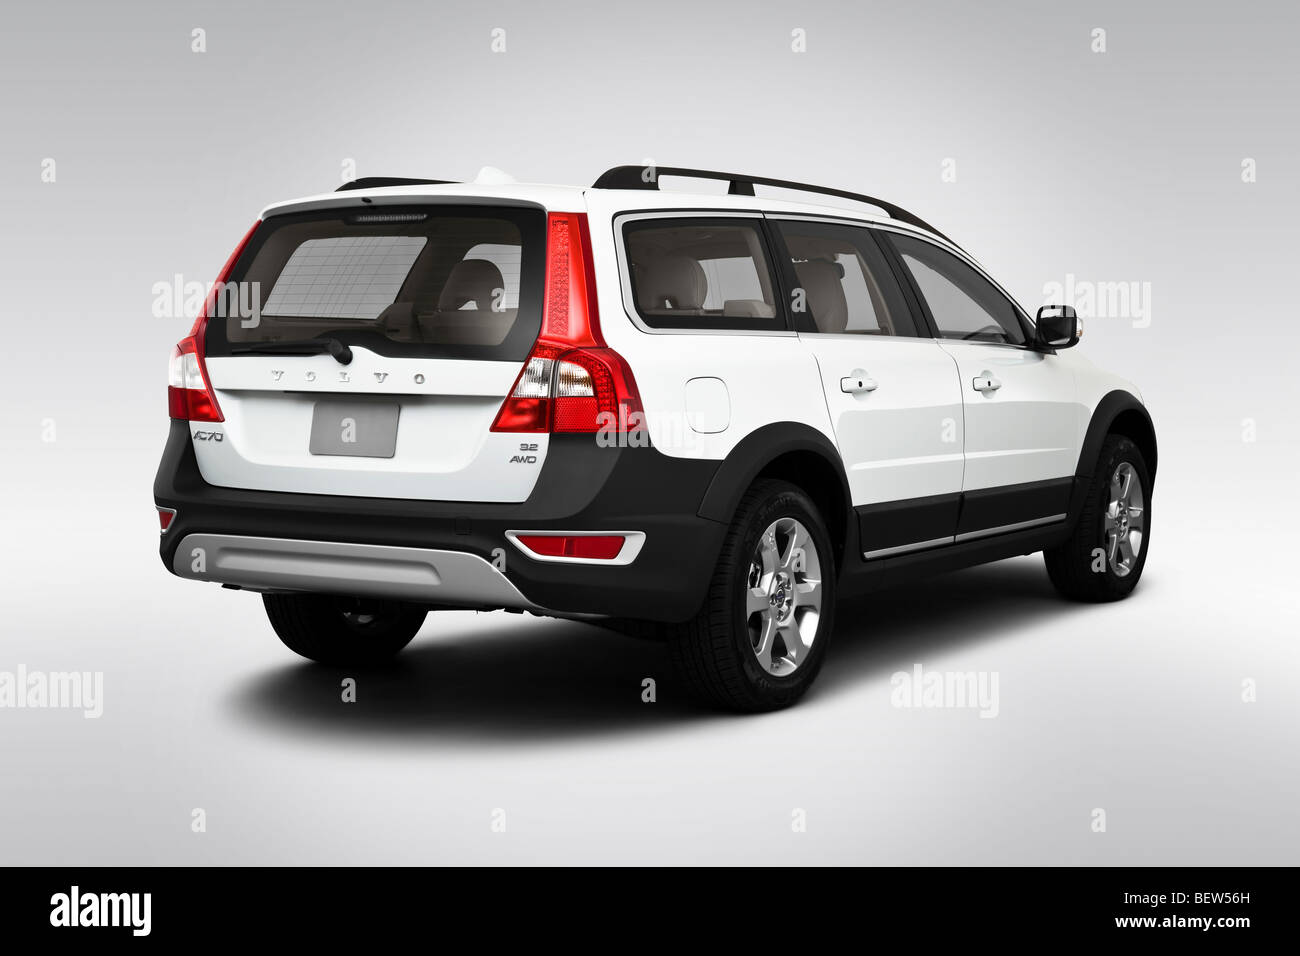 2010 volvo xc70 32 awd in white rear angle view BEW56H - 2010 Volvo Xc70 3 2